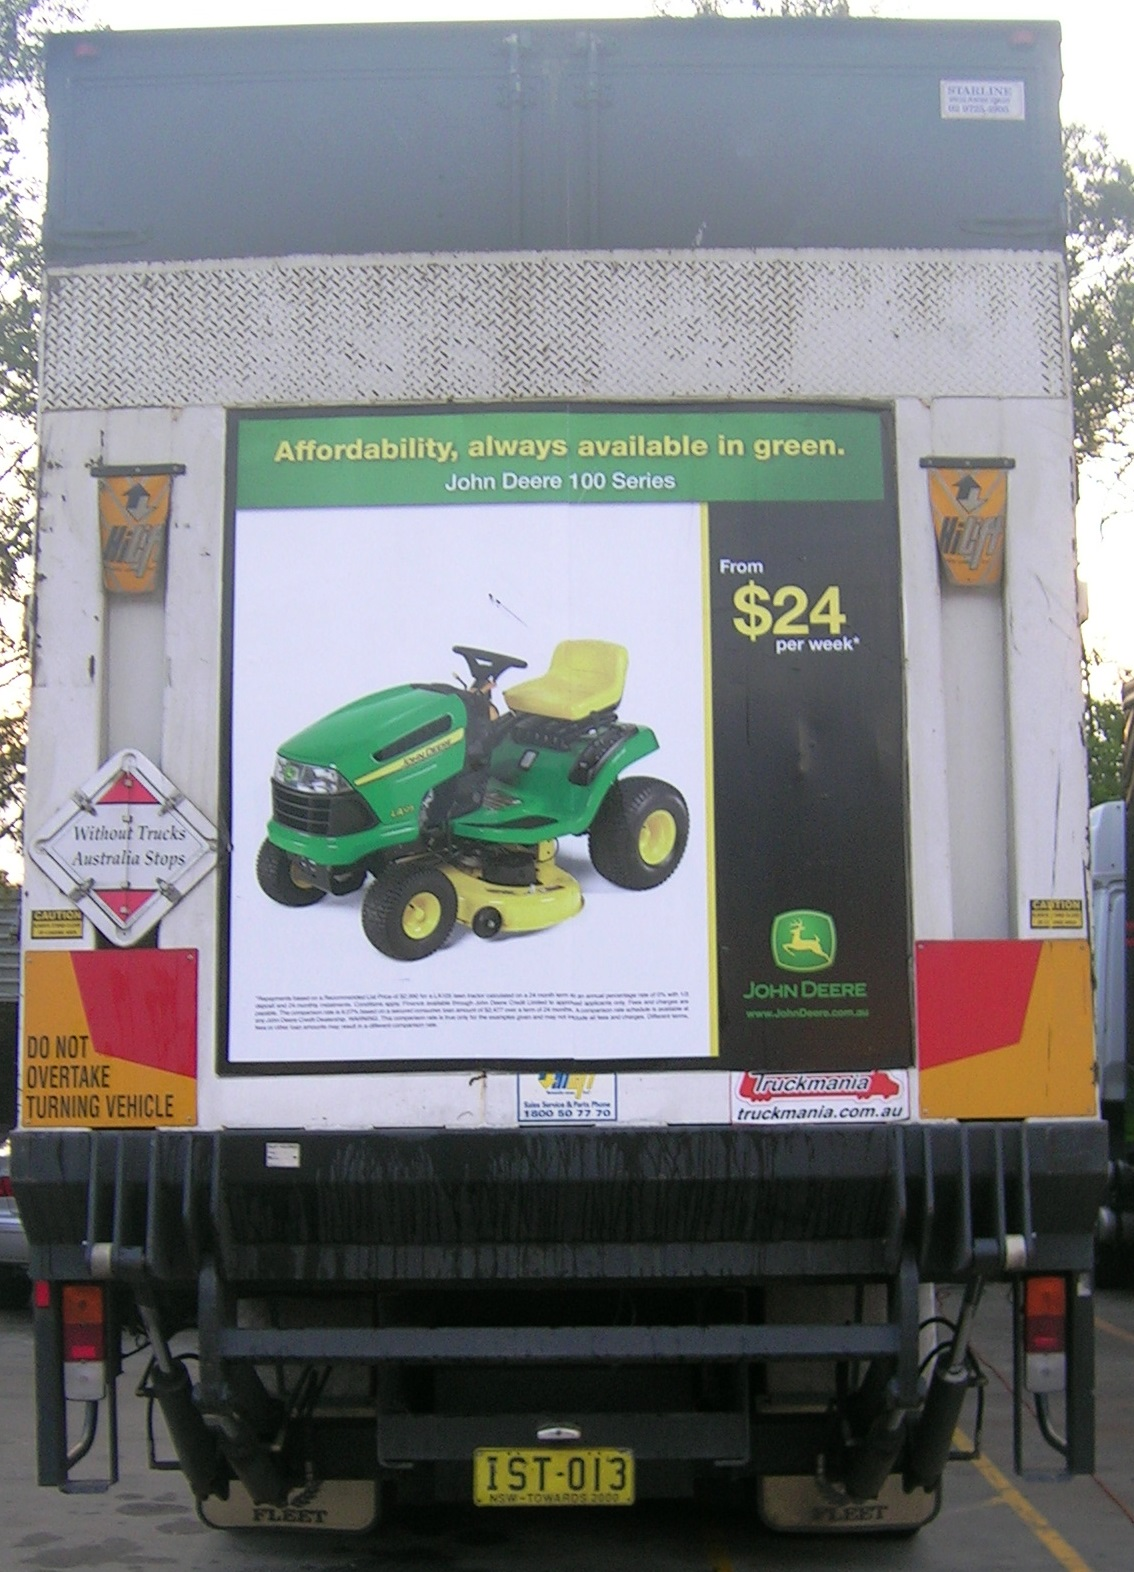 Truck advertising. TruckBack for John Deere 100 Series mowers. Affordability, always available in green campaign. On First Fleet vehicle. Tailgate.